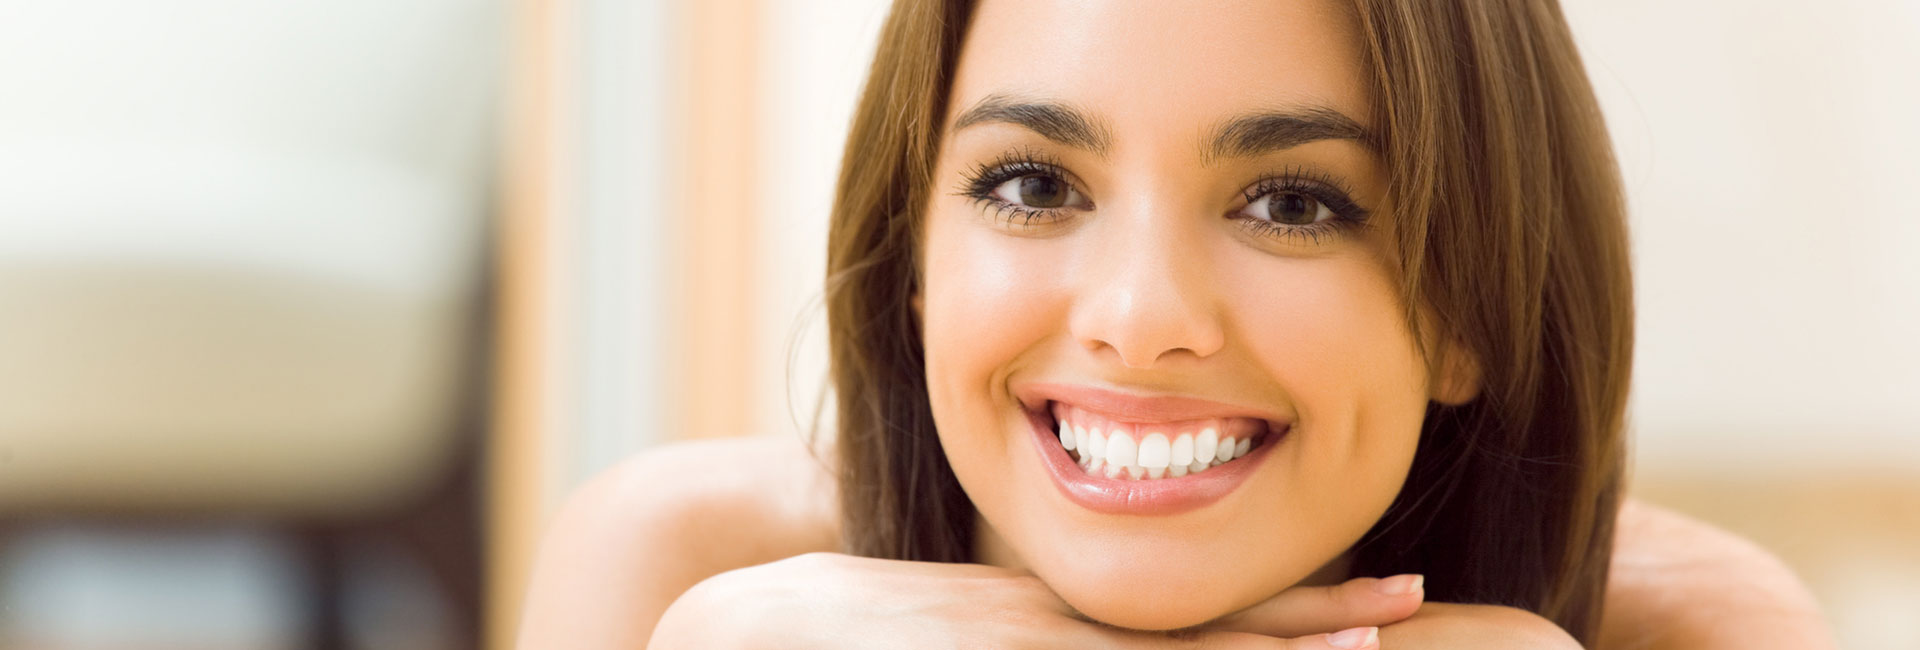 Young smiling woman with dental crowns